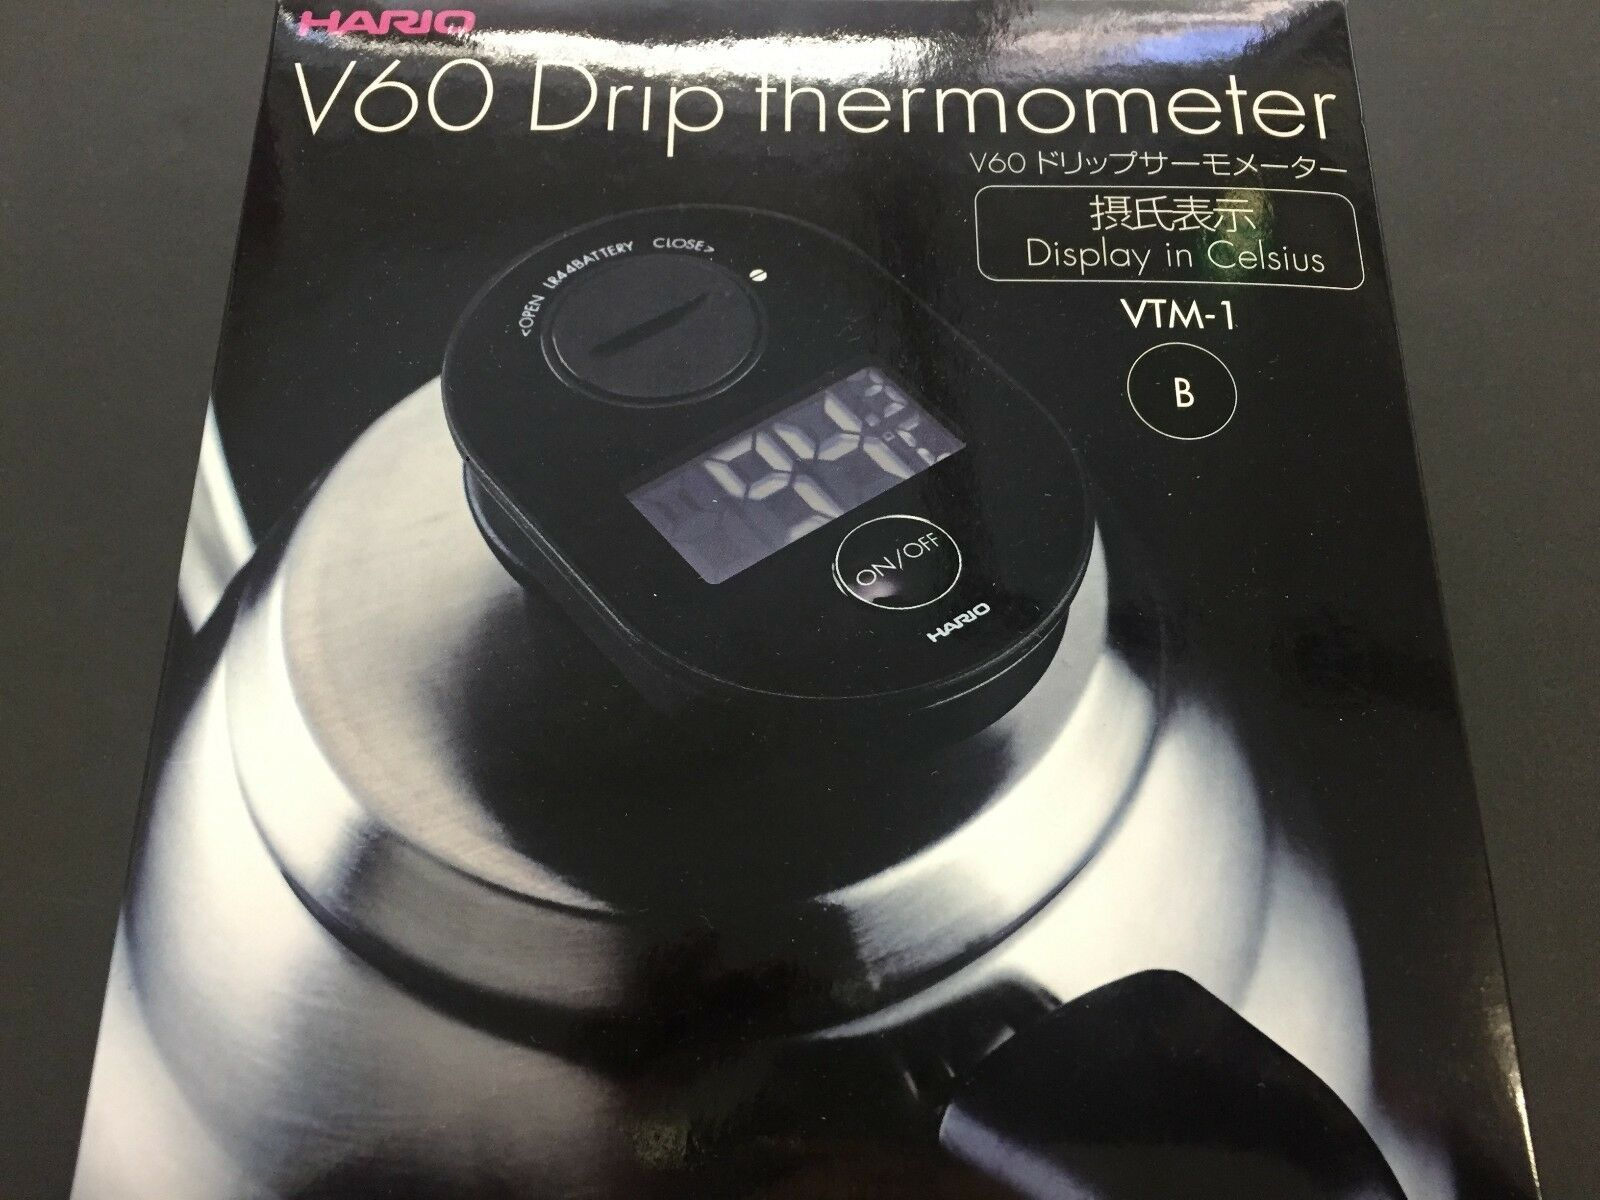 Hario V60 Mouth Hand Drip Coffee Thermometer VTM-1B VKB-100 VKB-120 EVKB-80